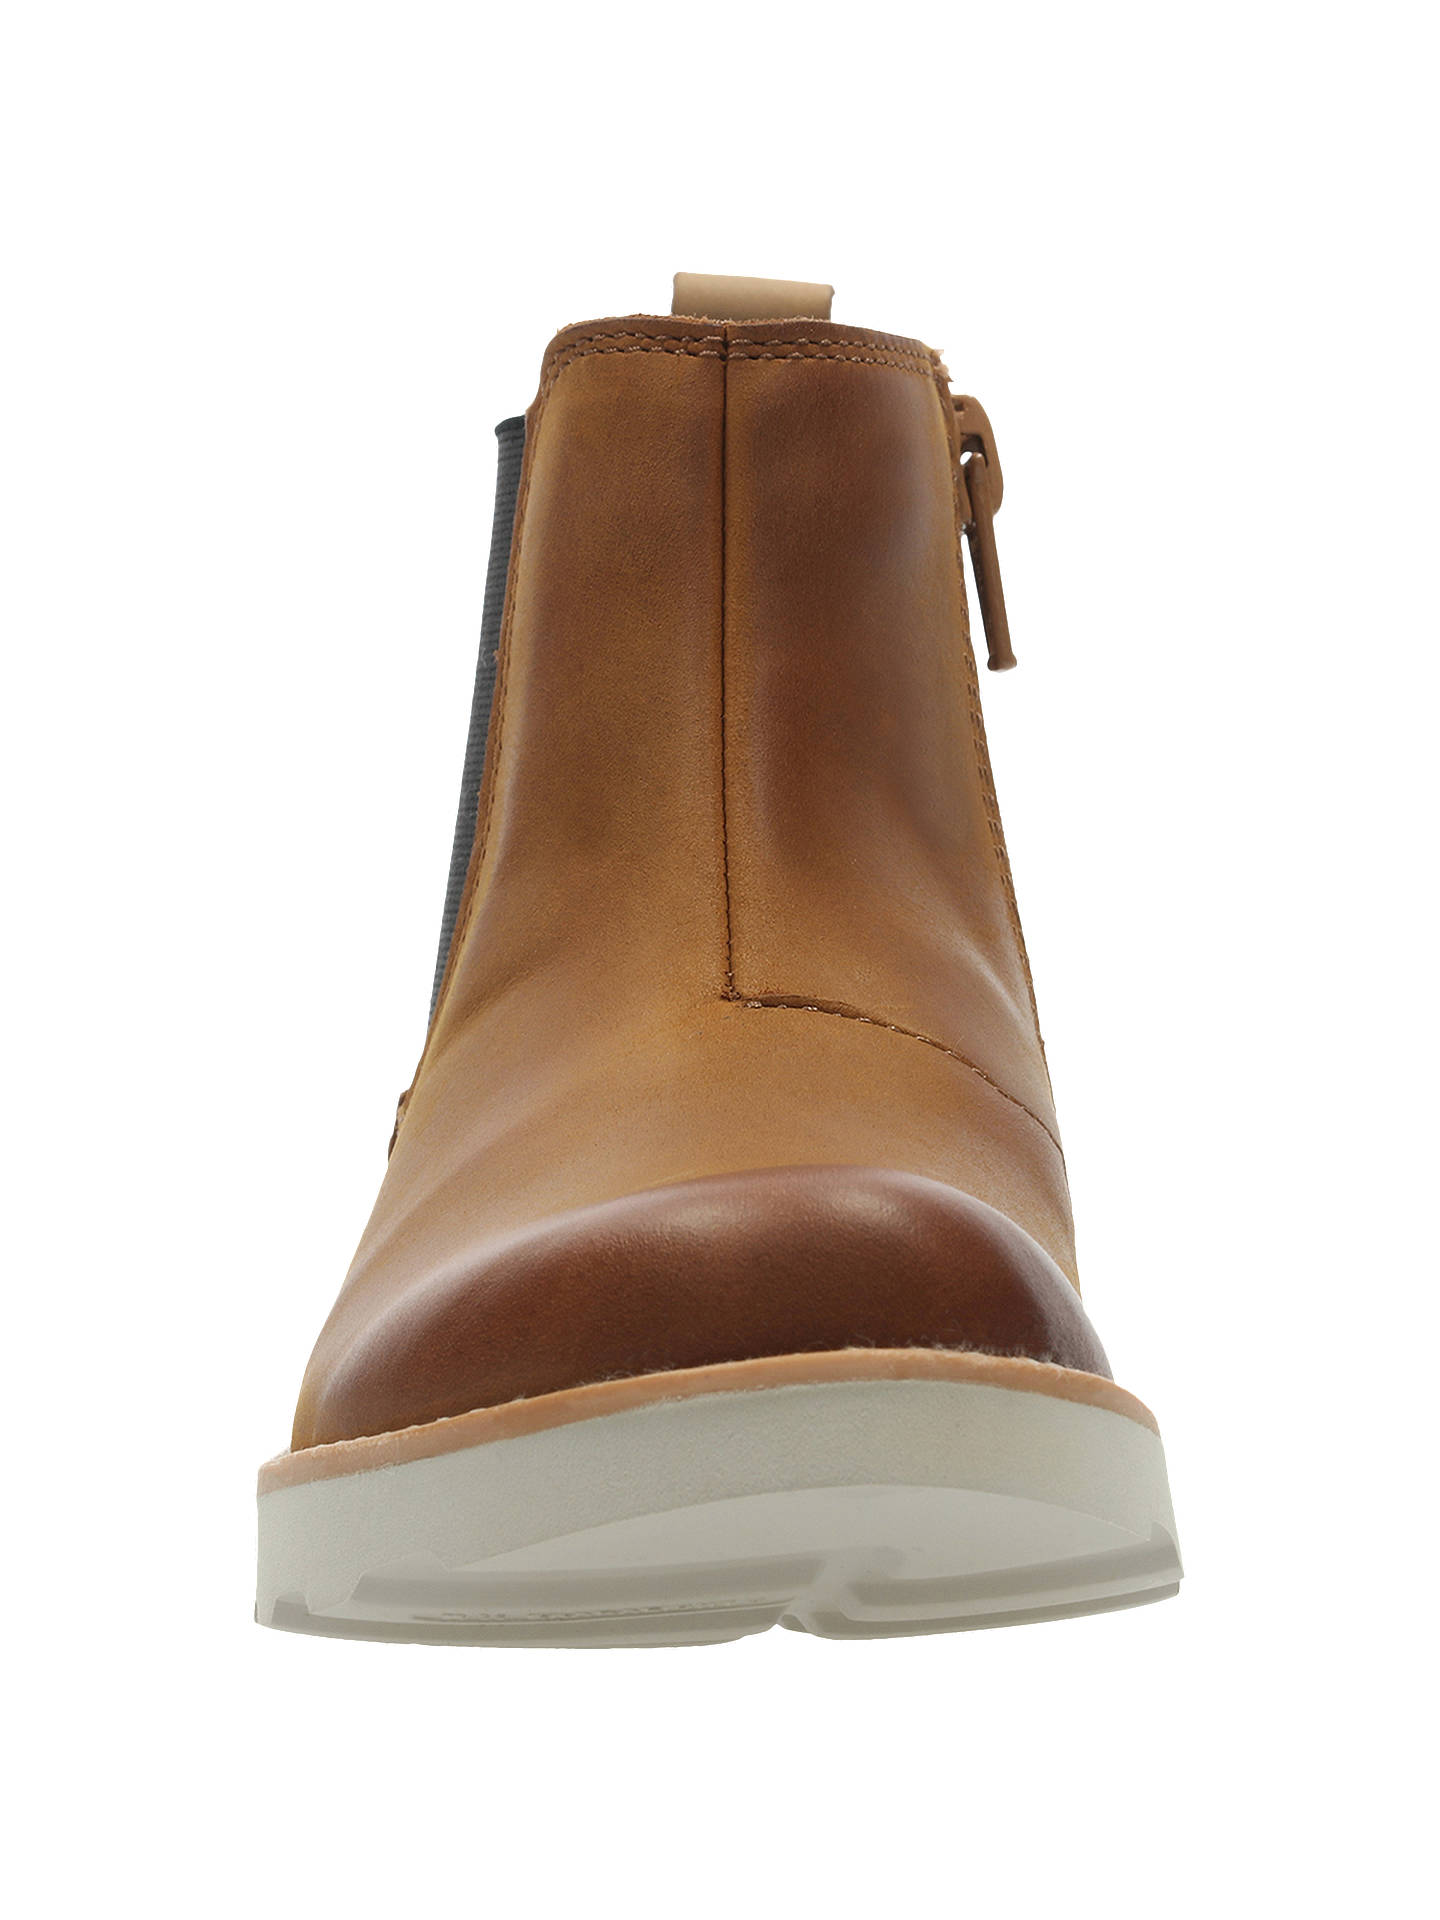 4a61786c3c Buy Clarks Children's Crown Halo Chelsea Boots, Tan, 10F Jnr Online at  johnlewis.